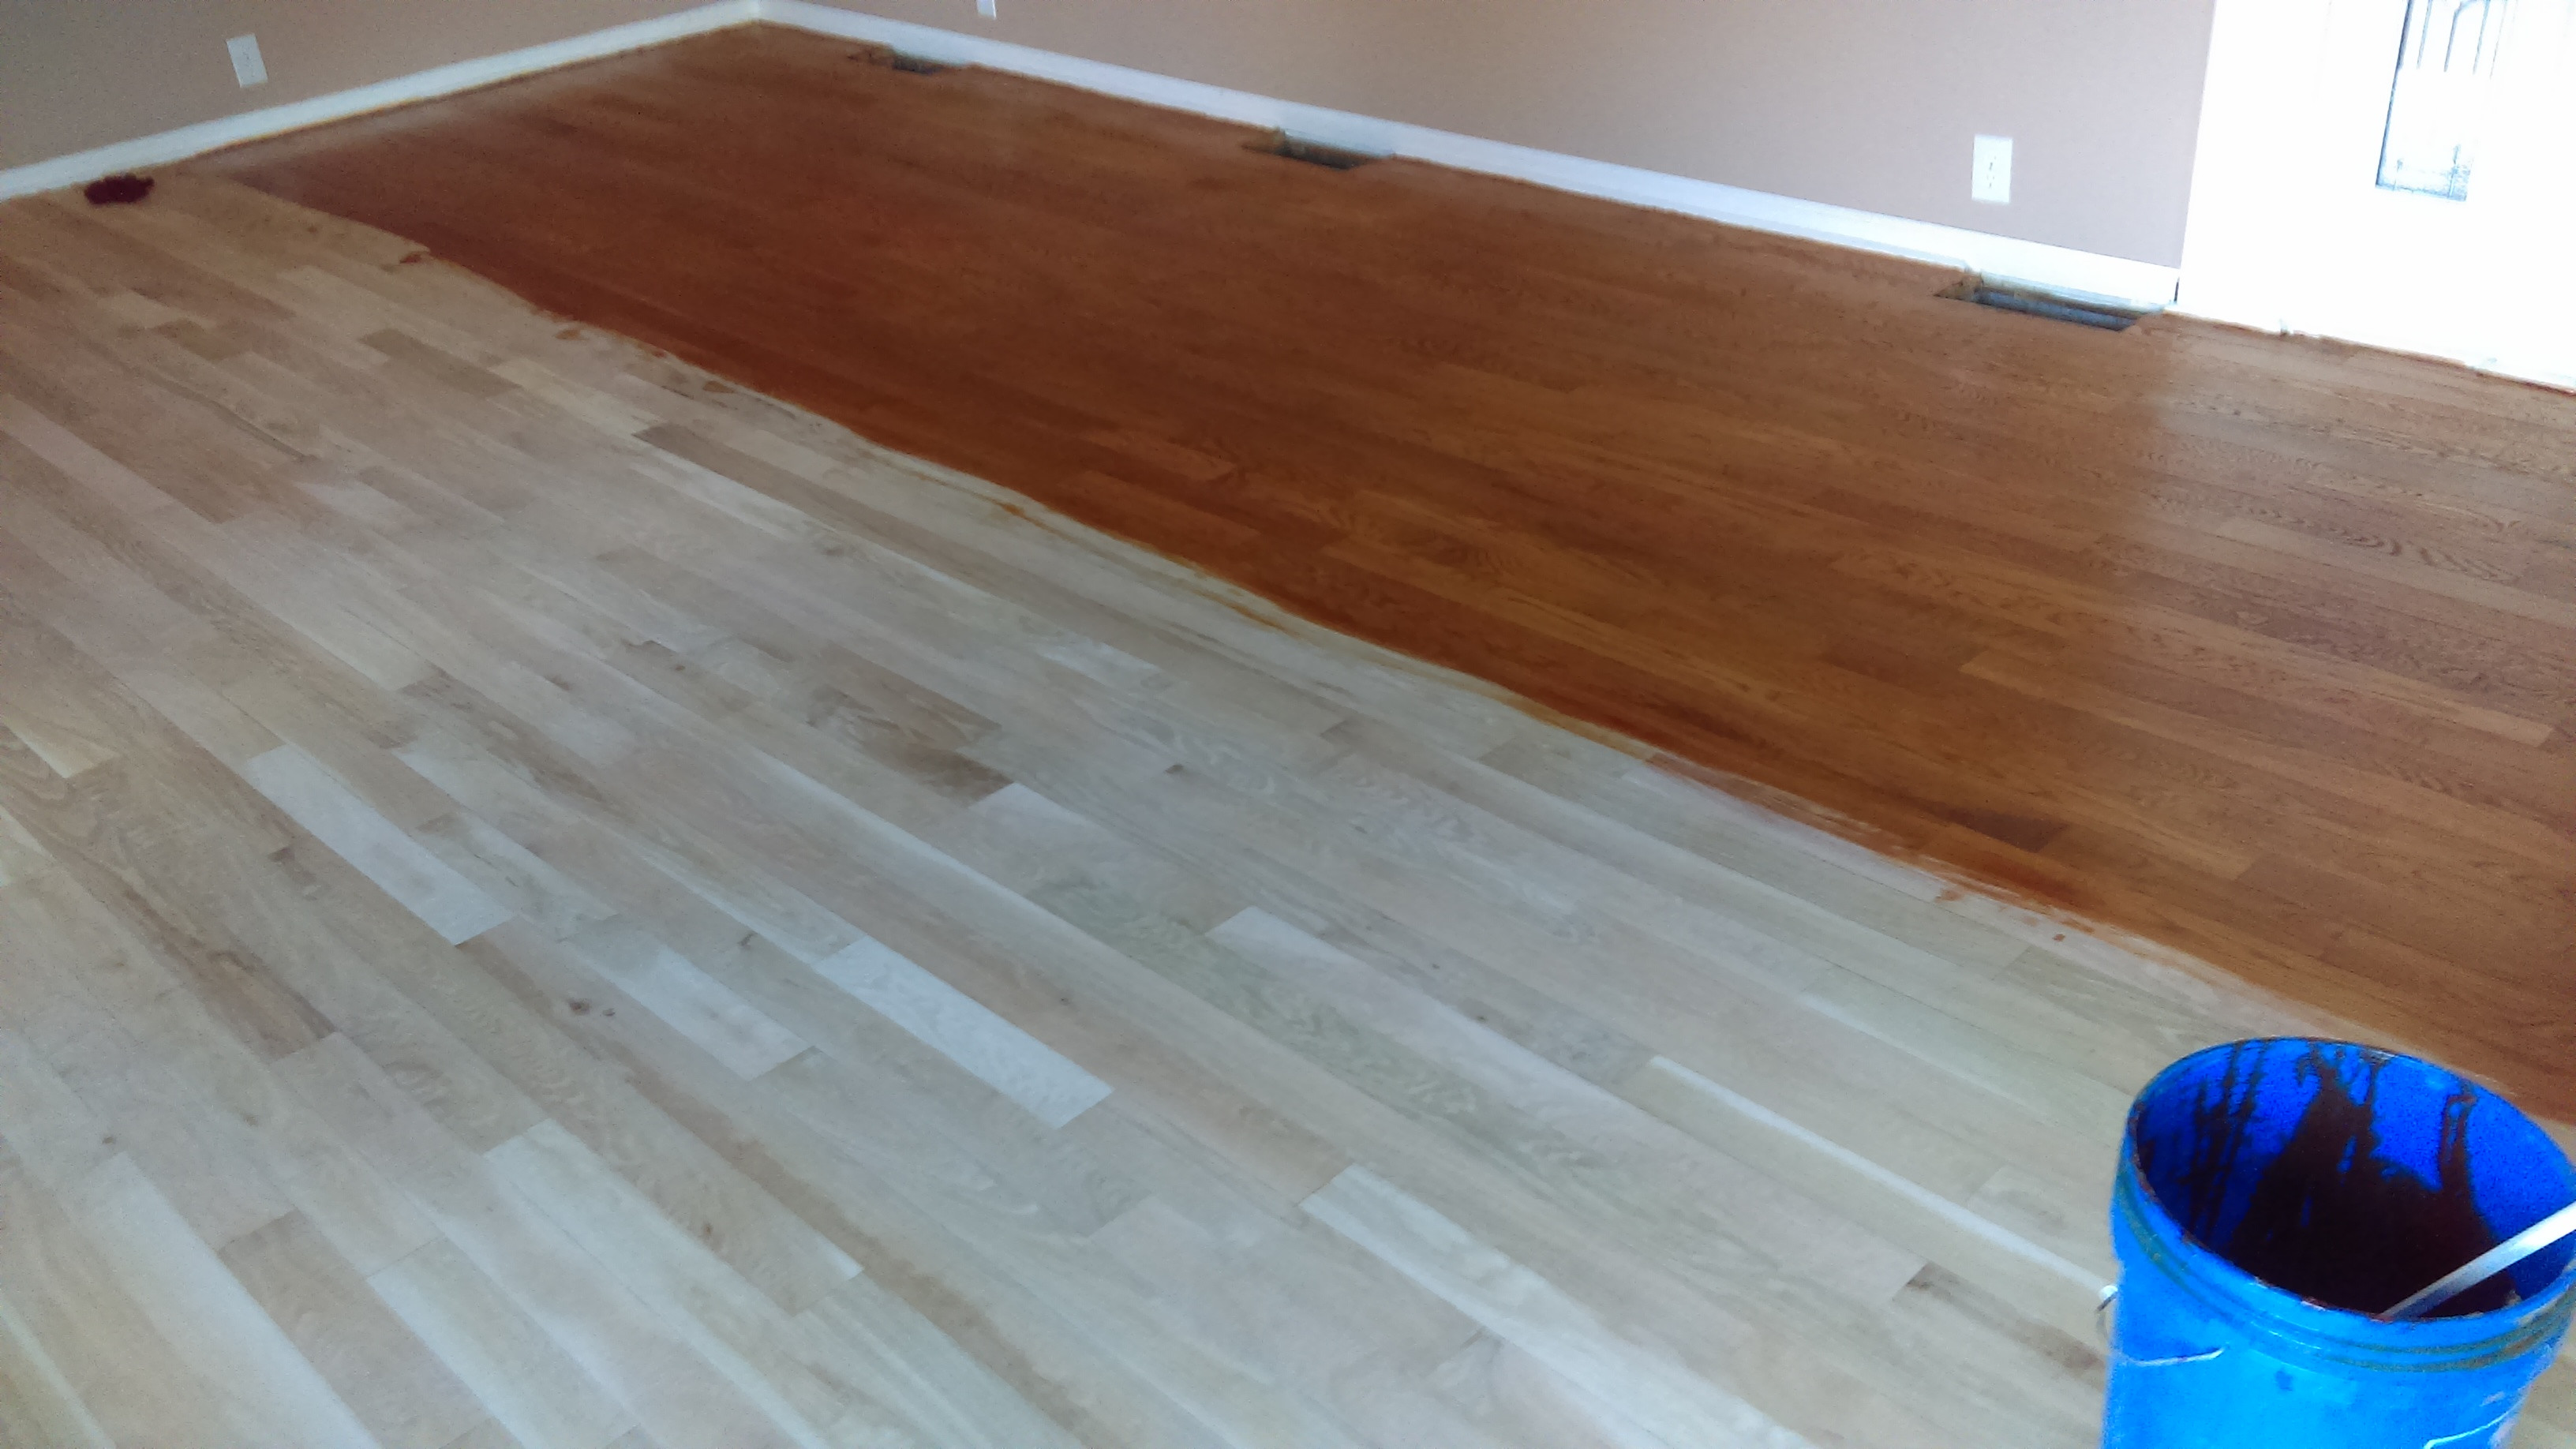 Hardwood Floor Refinishing Pasadena Ca Of Sandingsquad Hardwood Refinishing Houston 281 623 1698 for Sandingsquad6